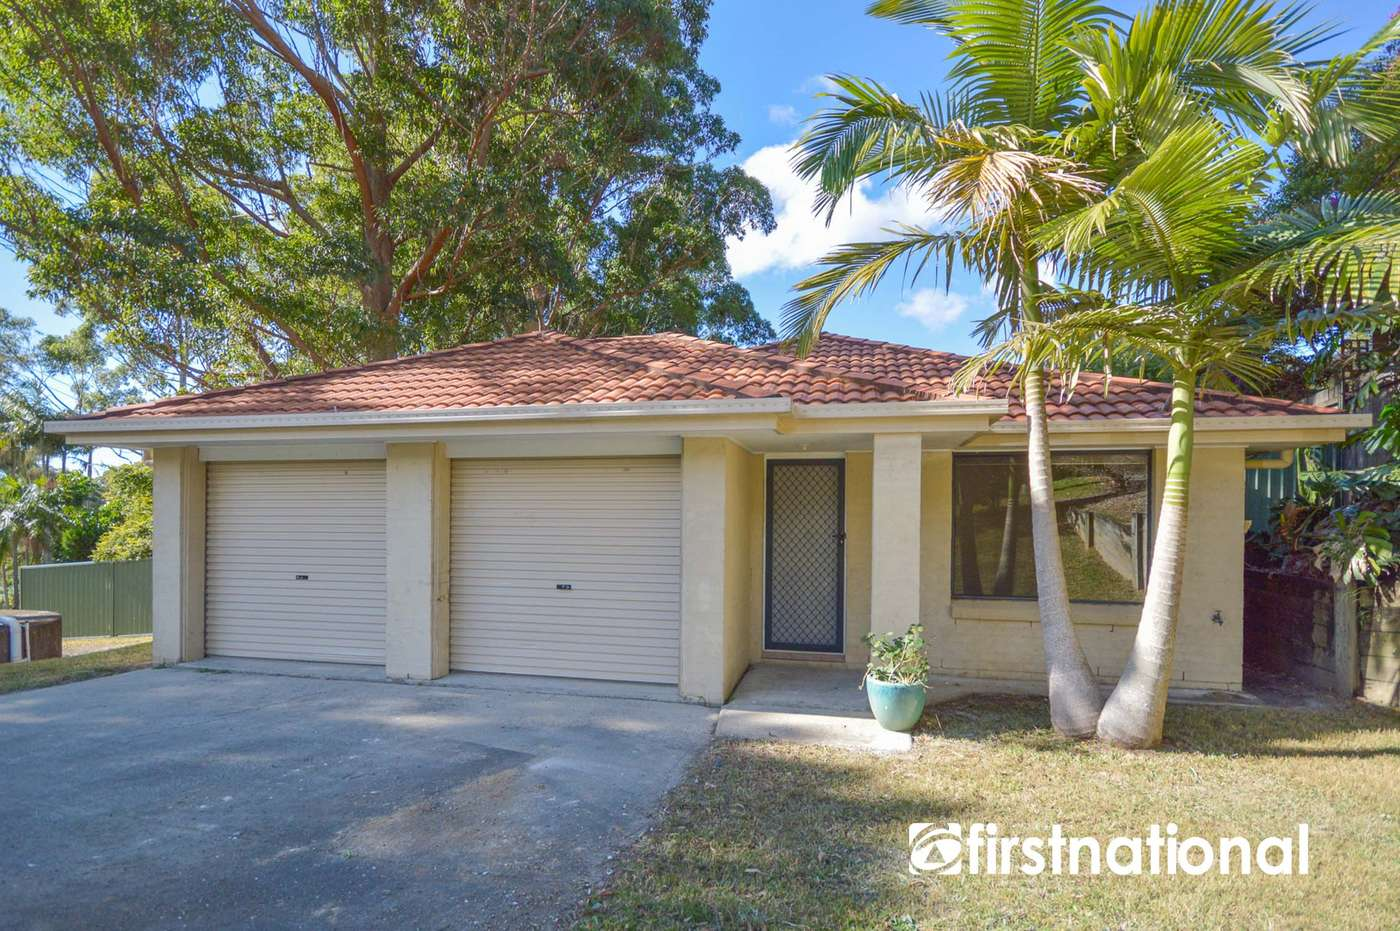 Main view of Homely house listing, 7 Demavend Drive, Tamborine Mountain, QLD 4272